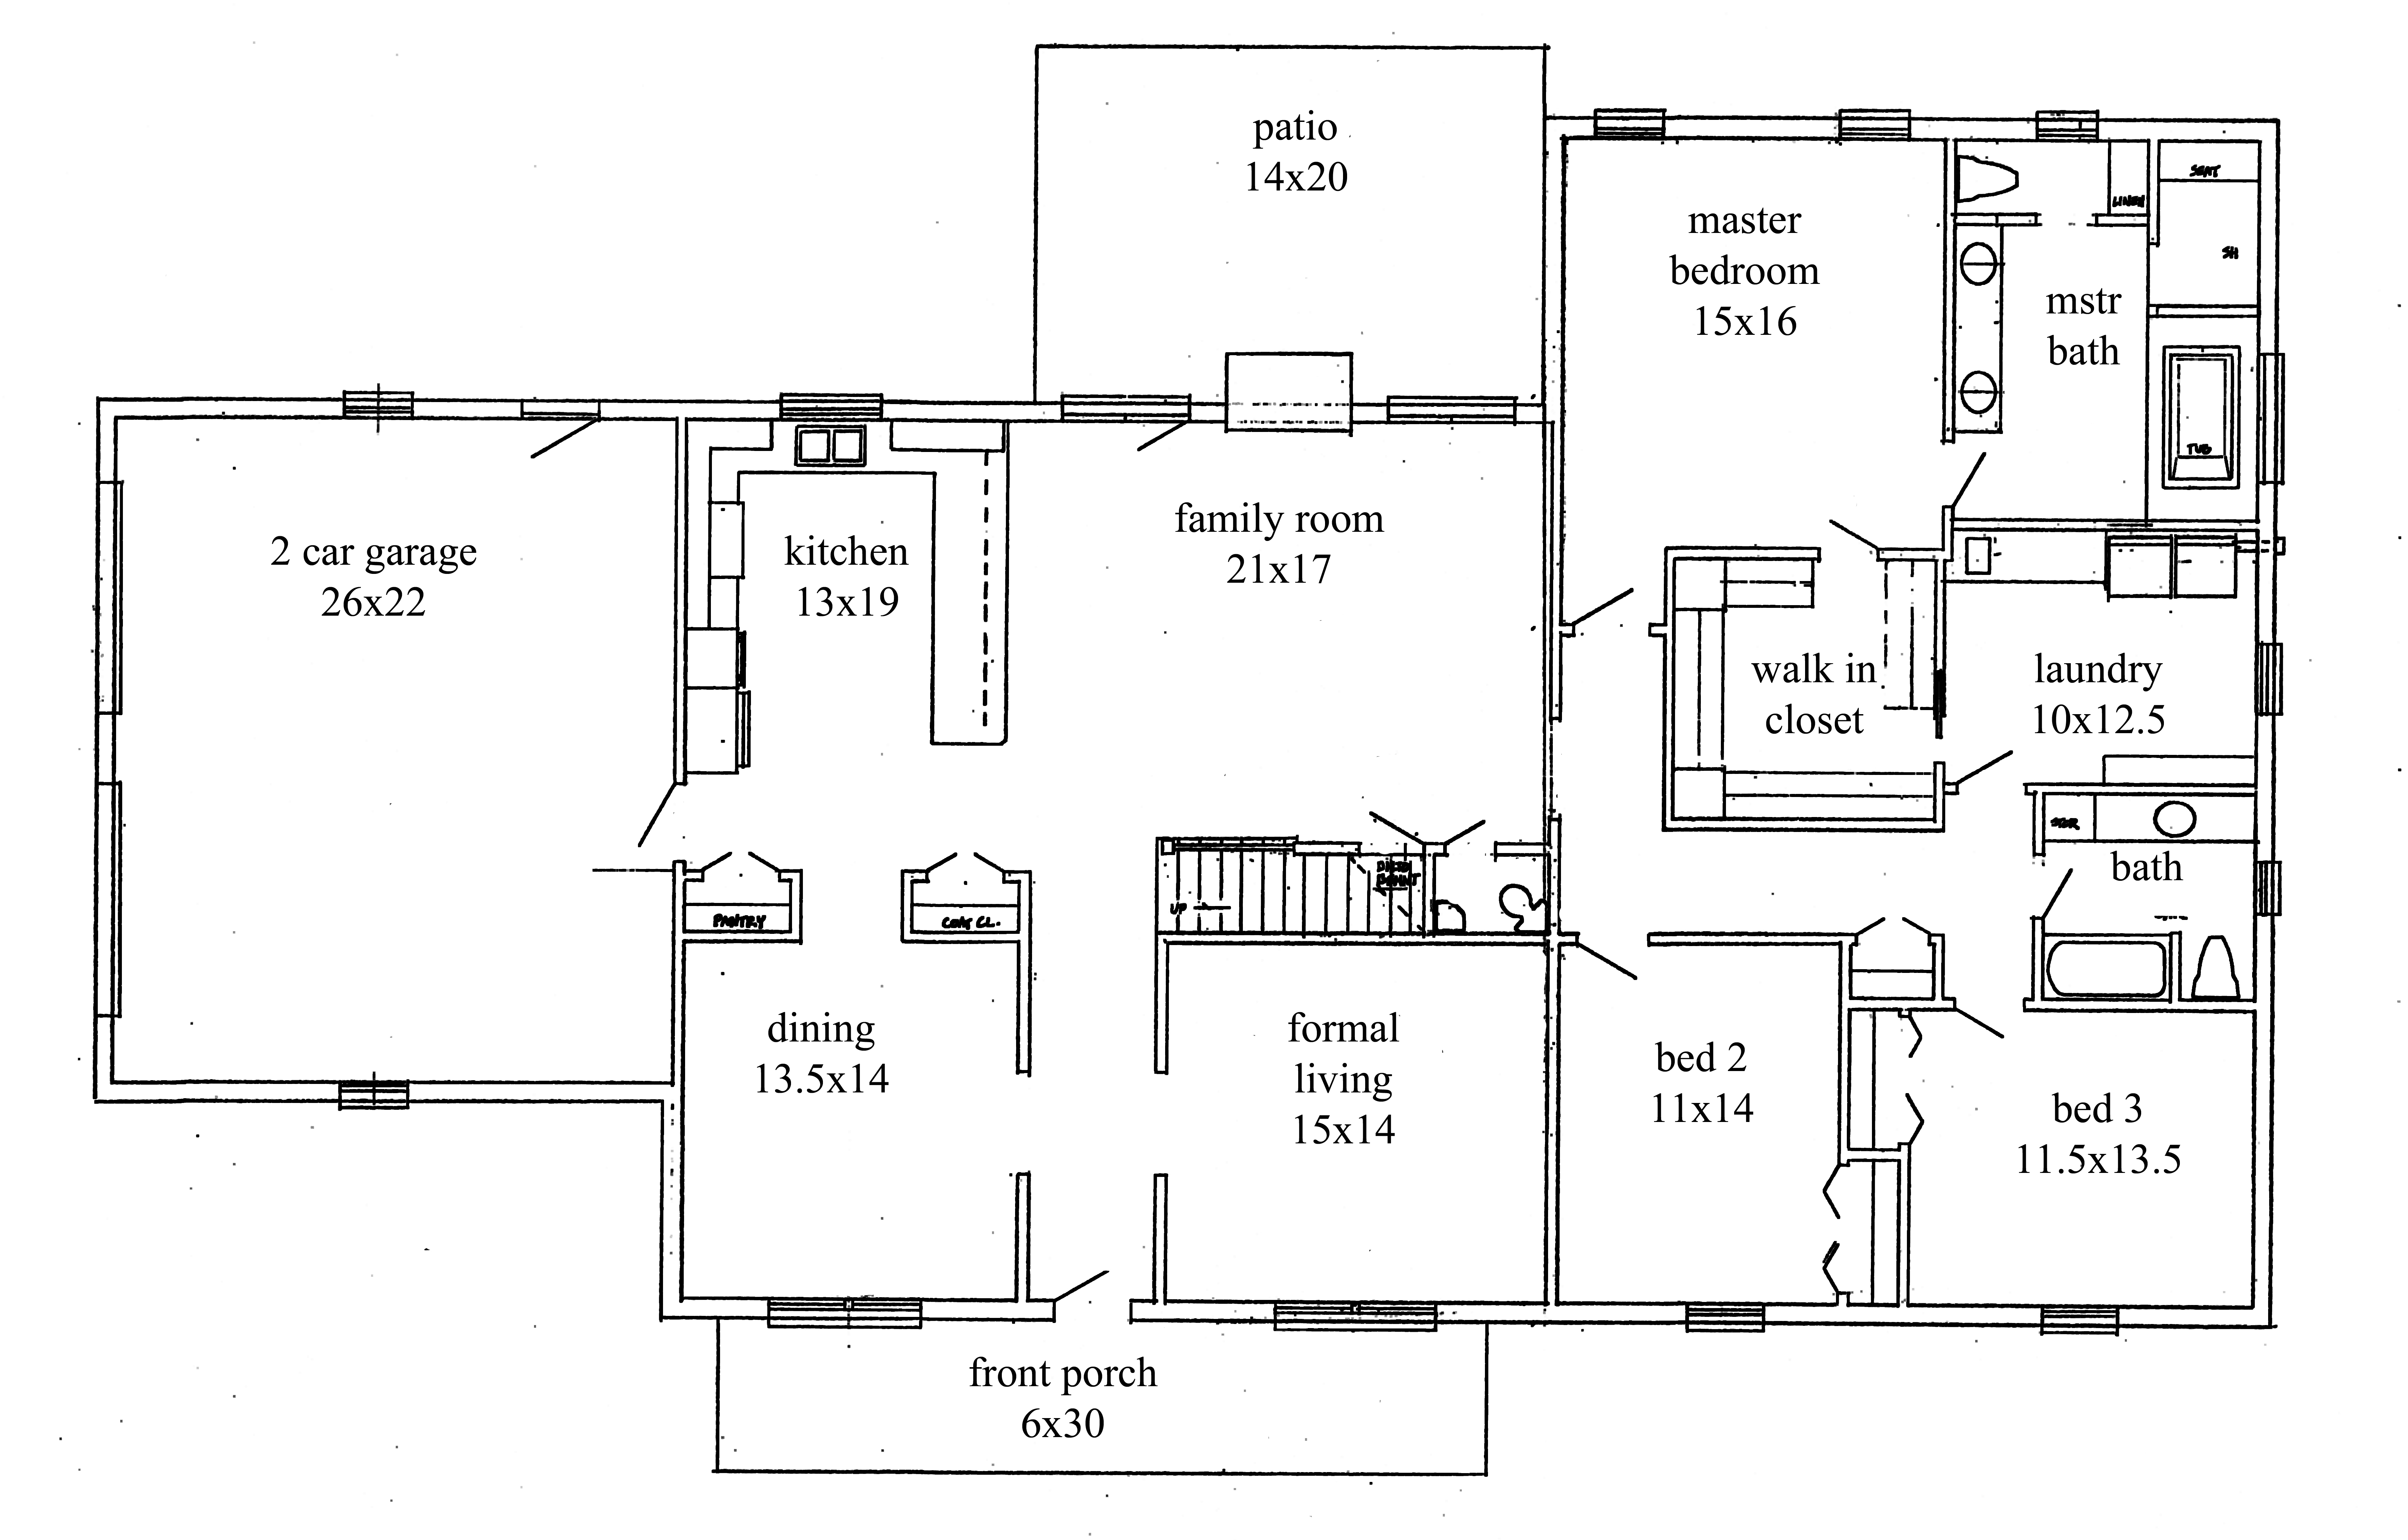 House Plans New Construction Home Floor Plan Greenwood - Ranch open floor plans